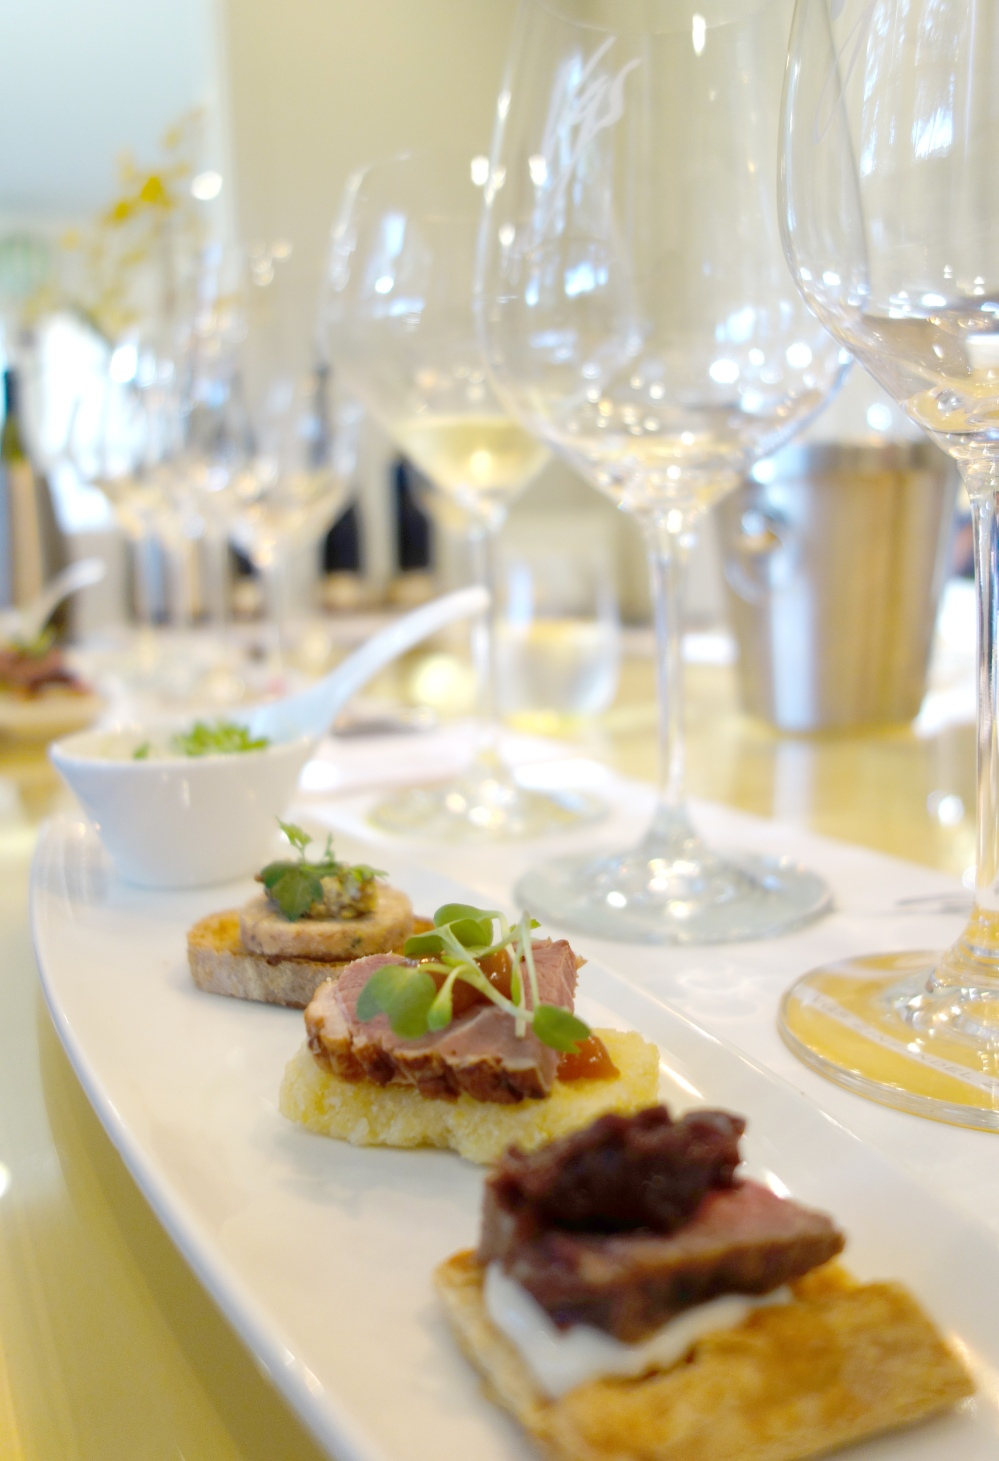 VGS Chateau Potelle Winery and La Toque Food Pairing St. Helena Wine Tasting